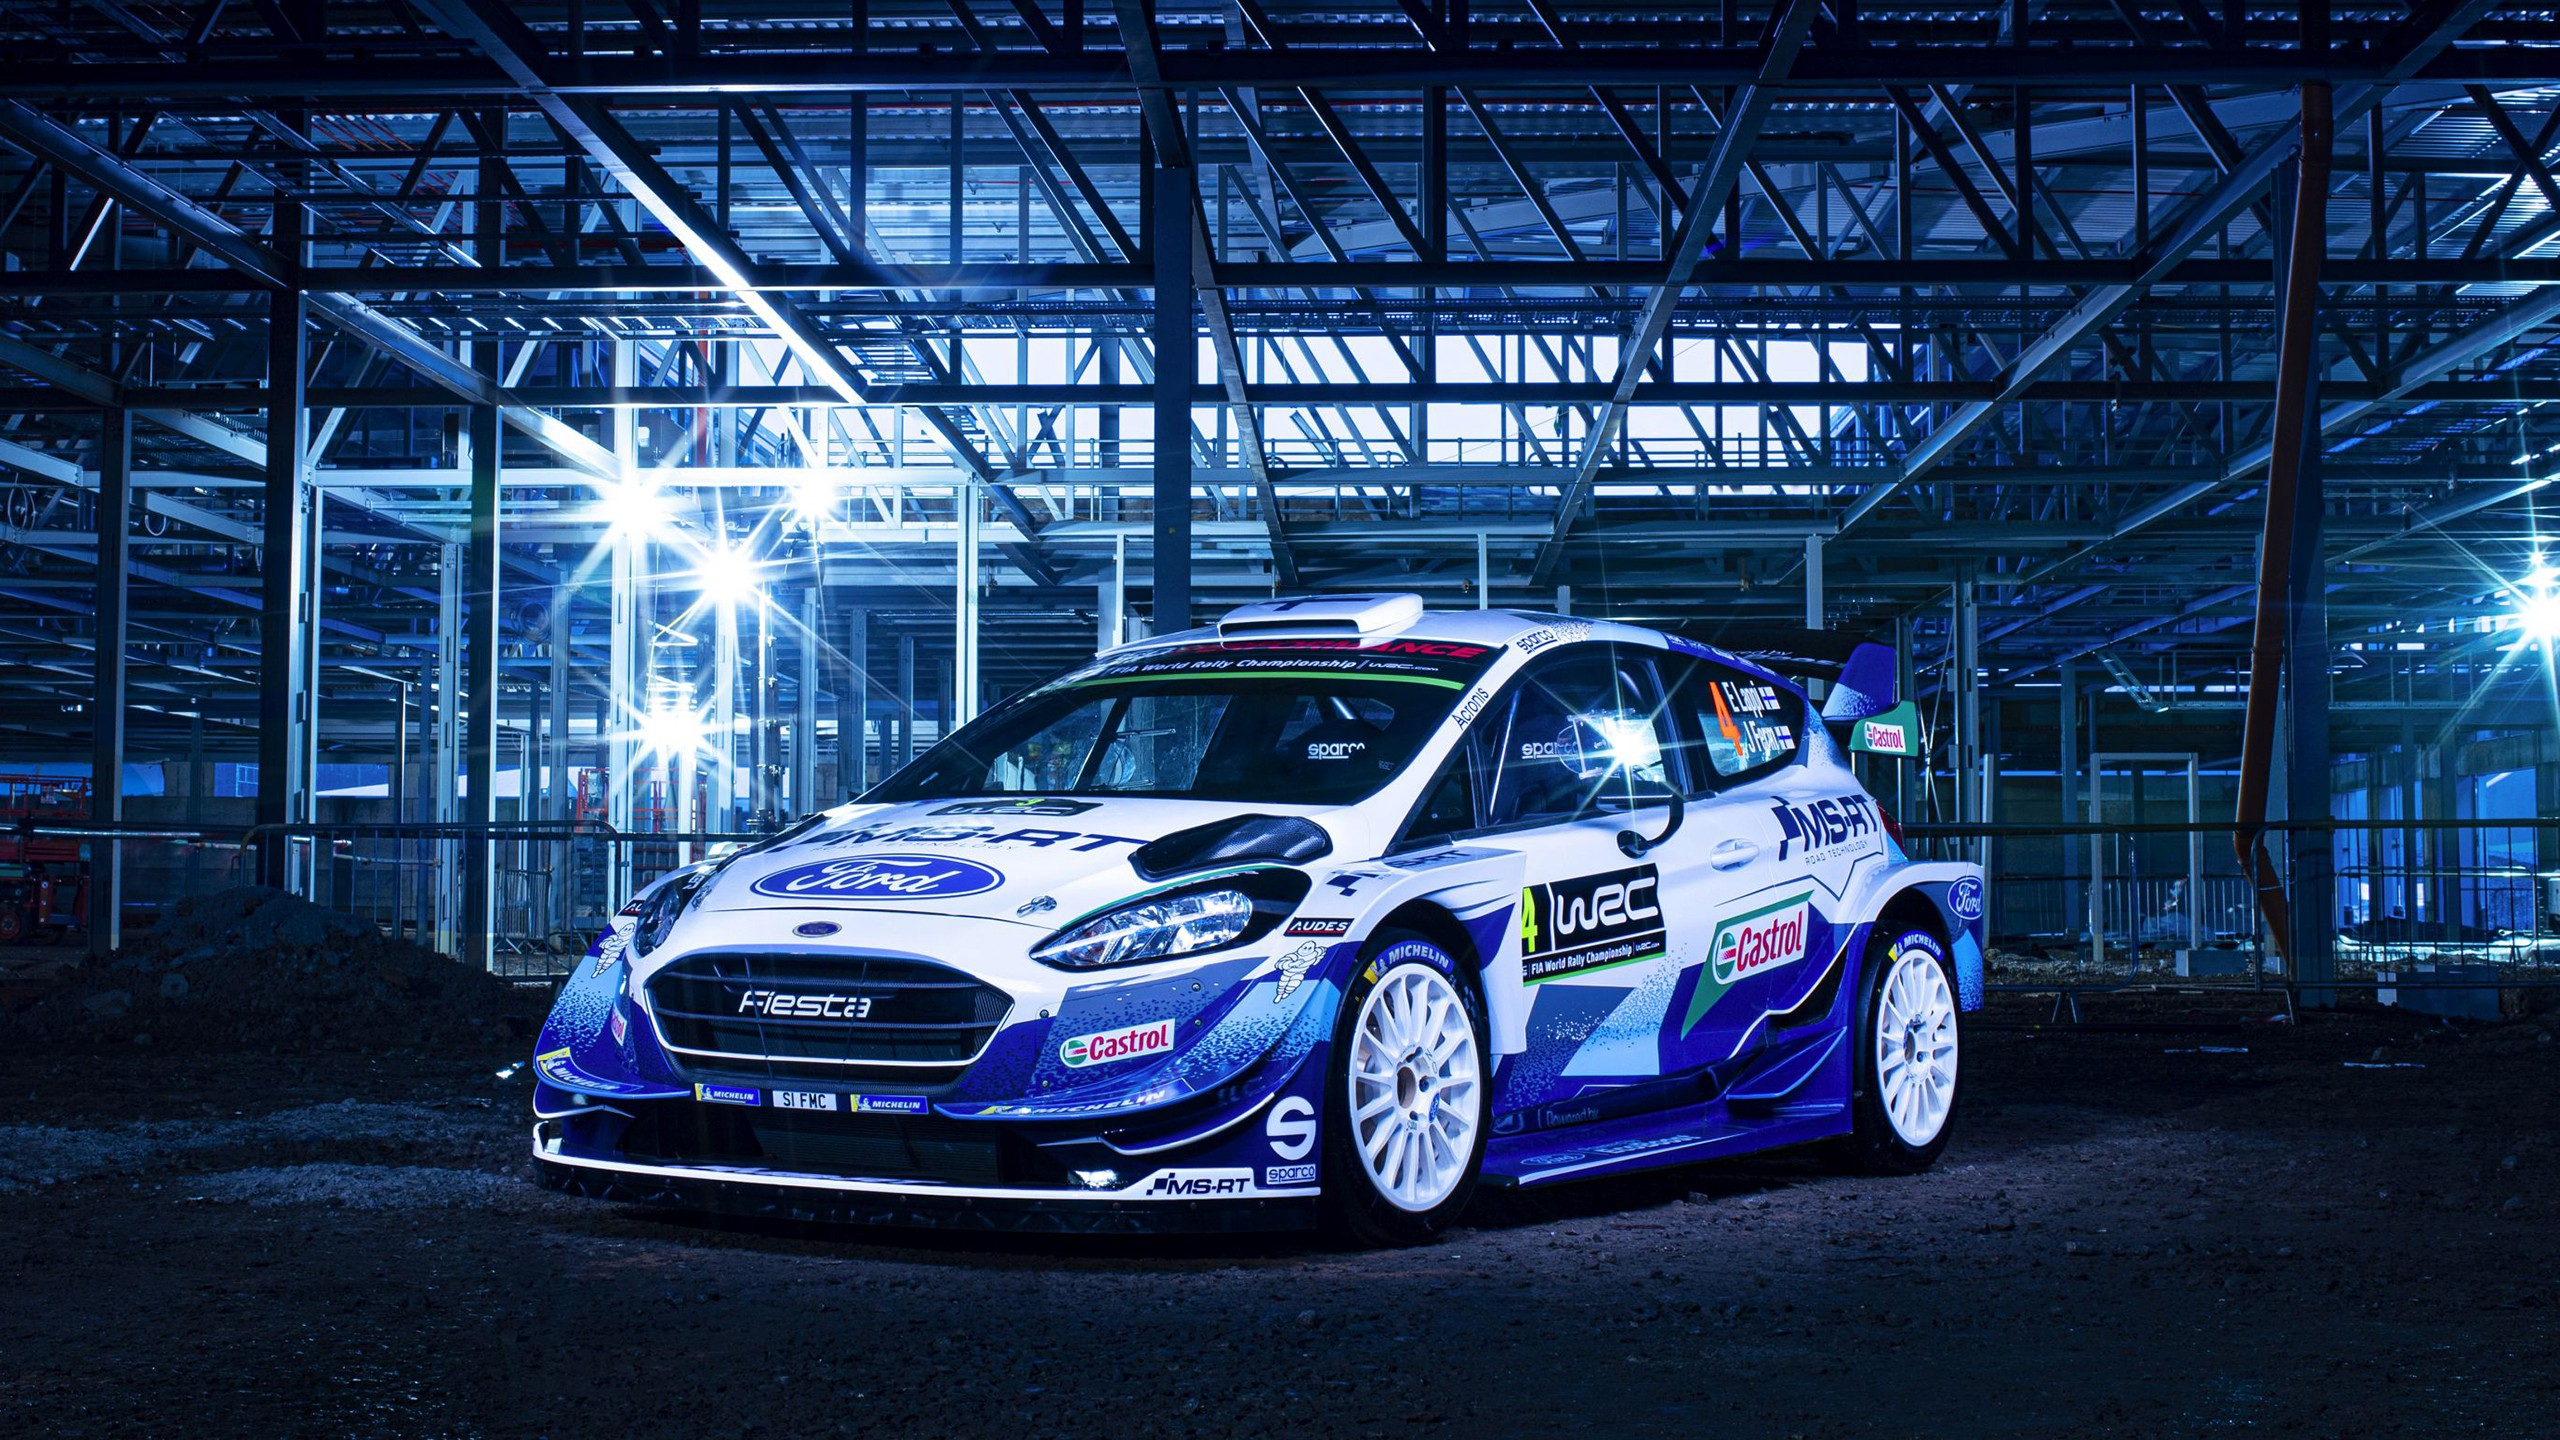 M Sport Ford Fiesta Wrc 2020 Wallpaper Hd Car Wallpapers